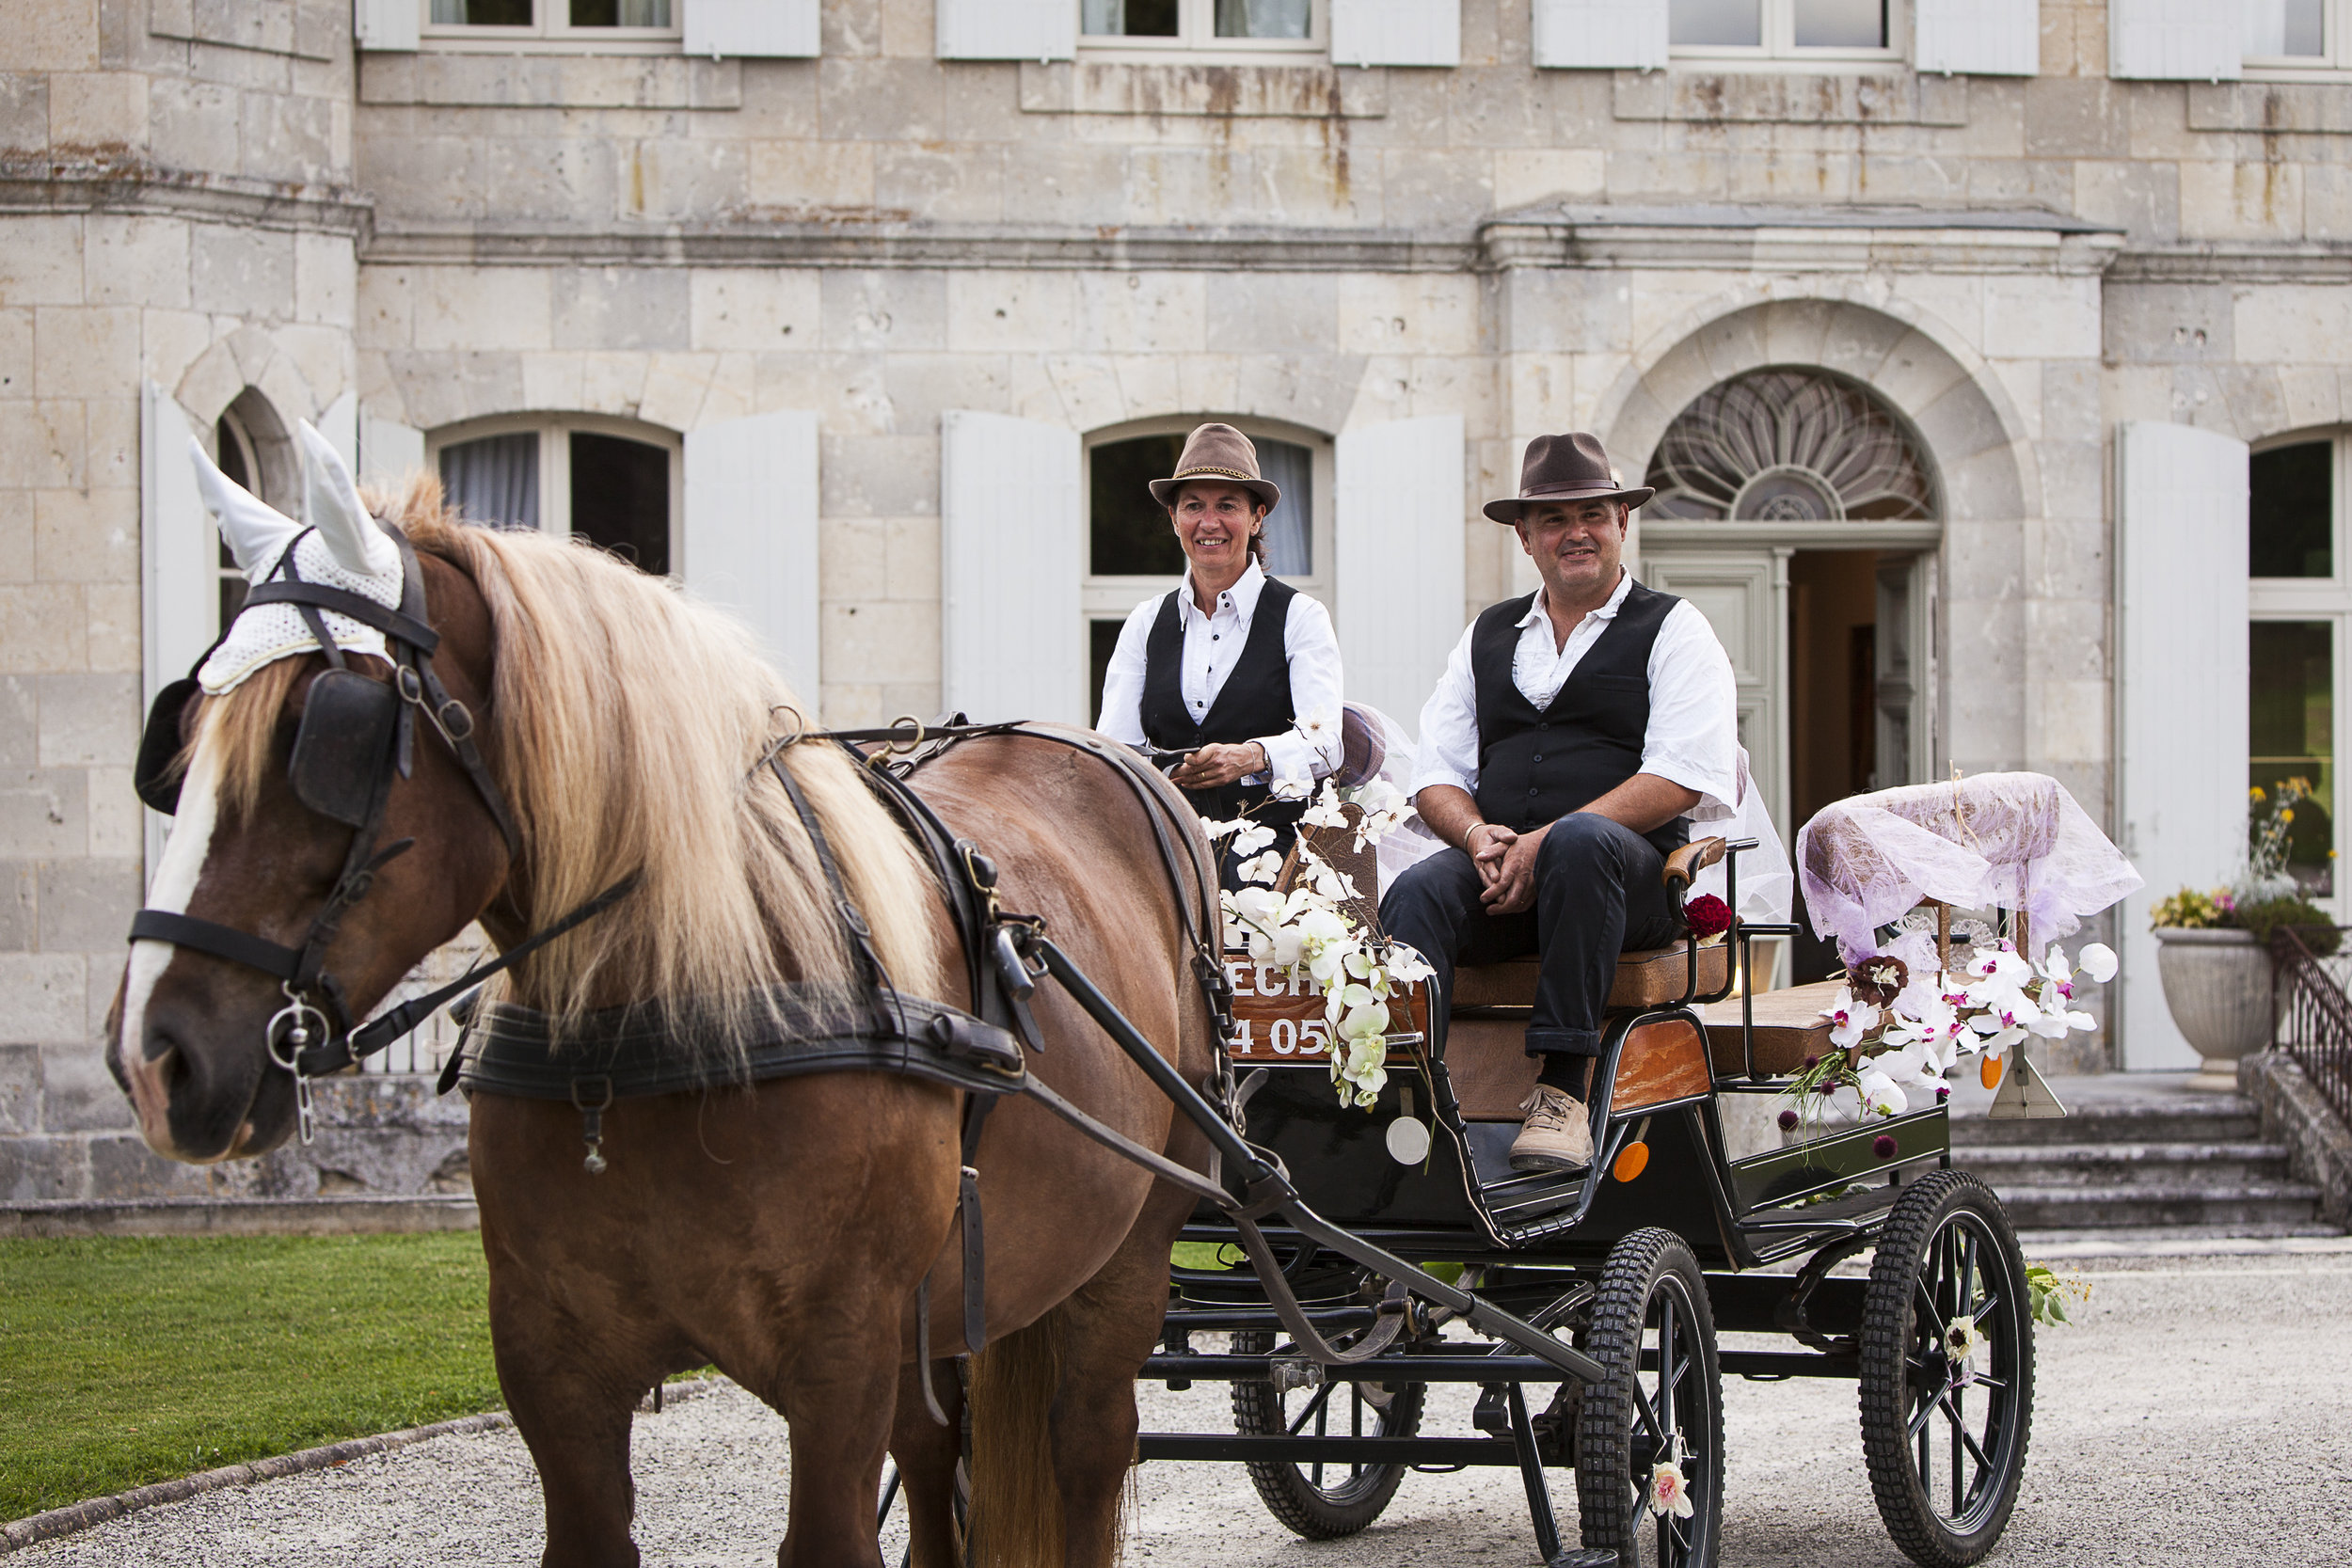 Horse & carriage organised by @theproposers